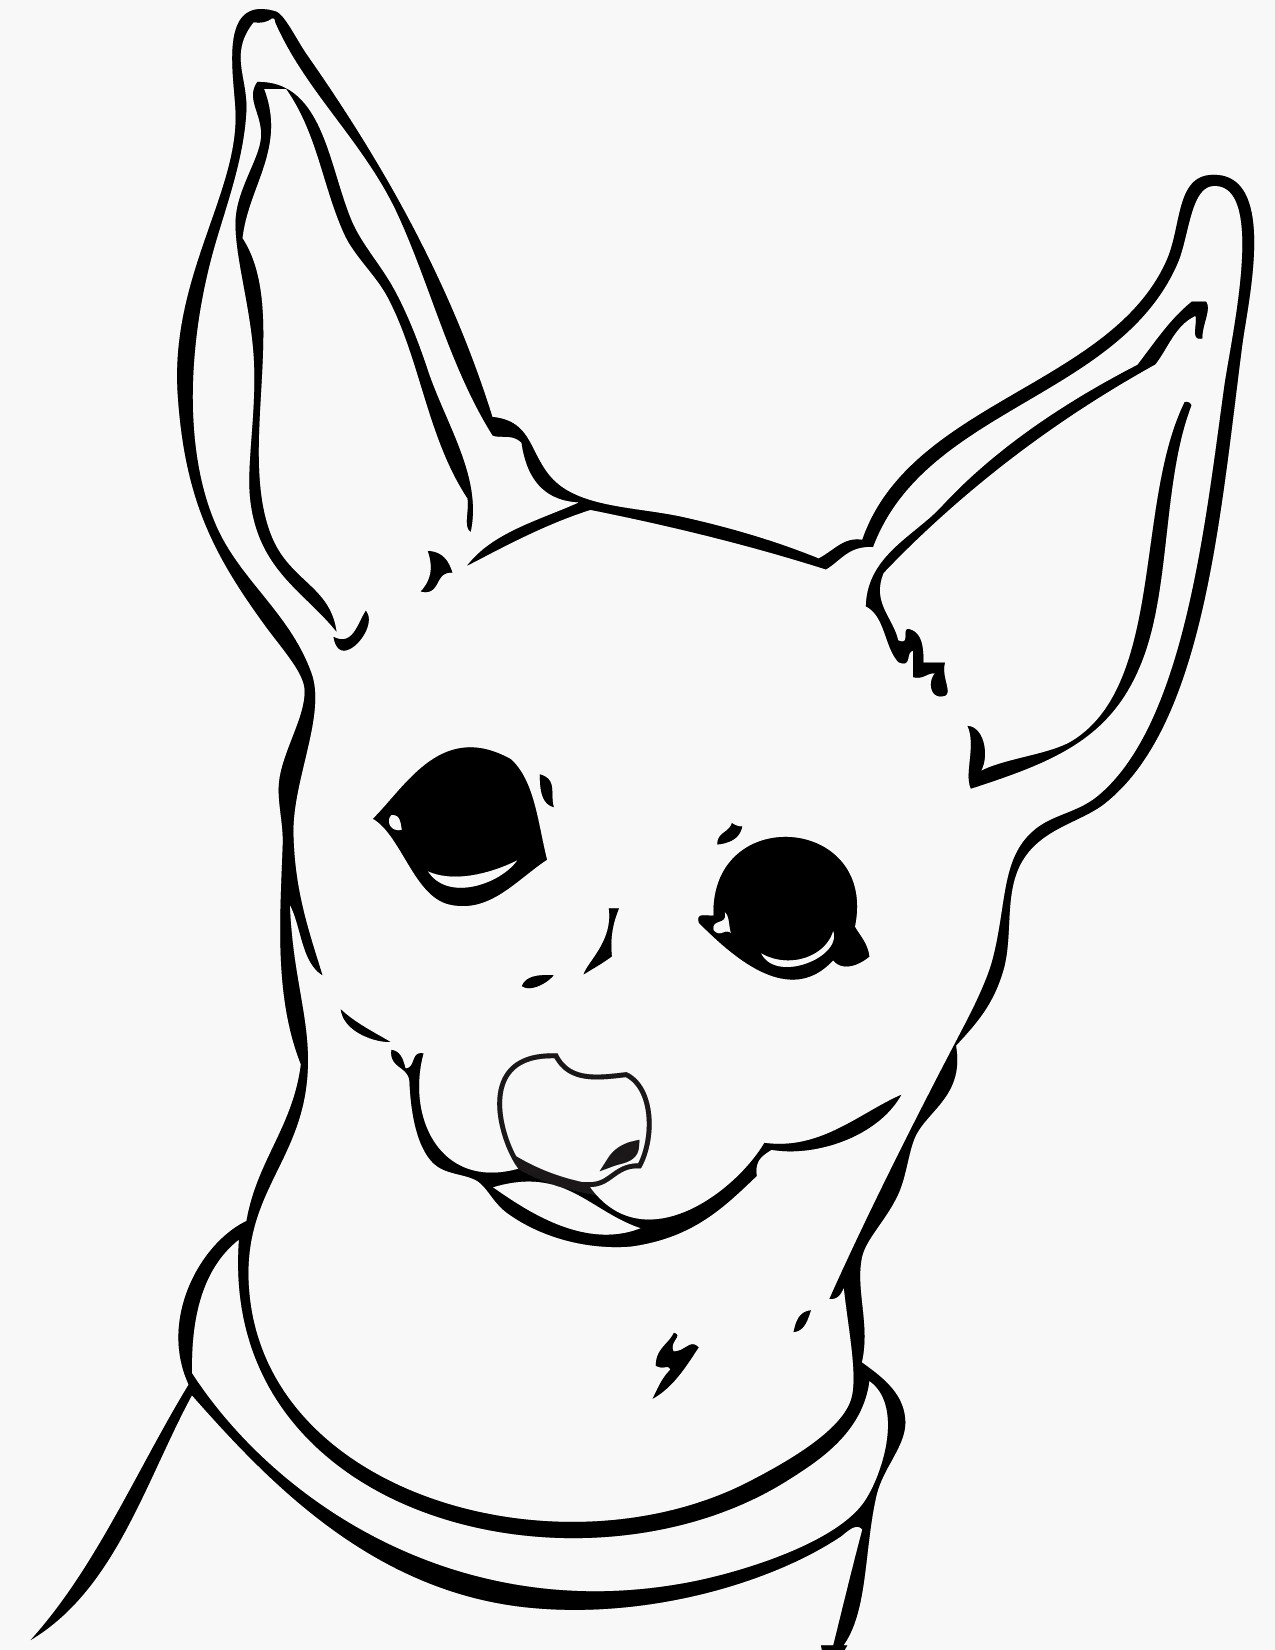 Chiwawa Coloring Pages  Download 17i - Free For kids